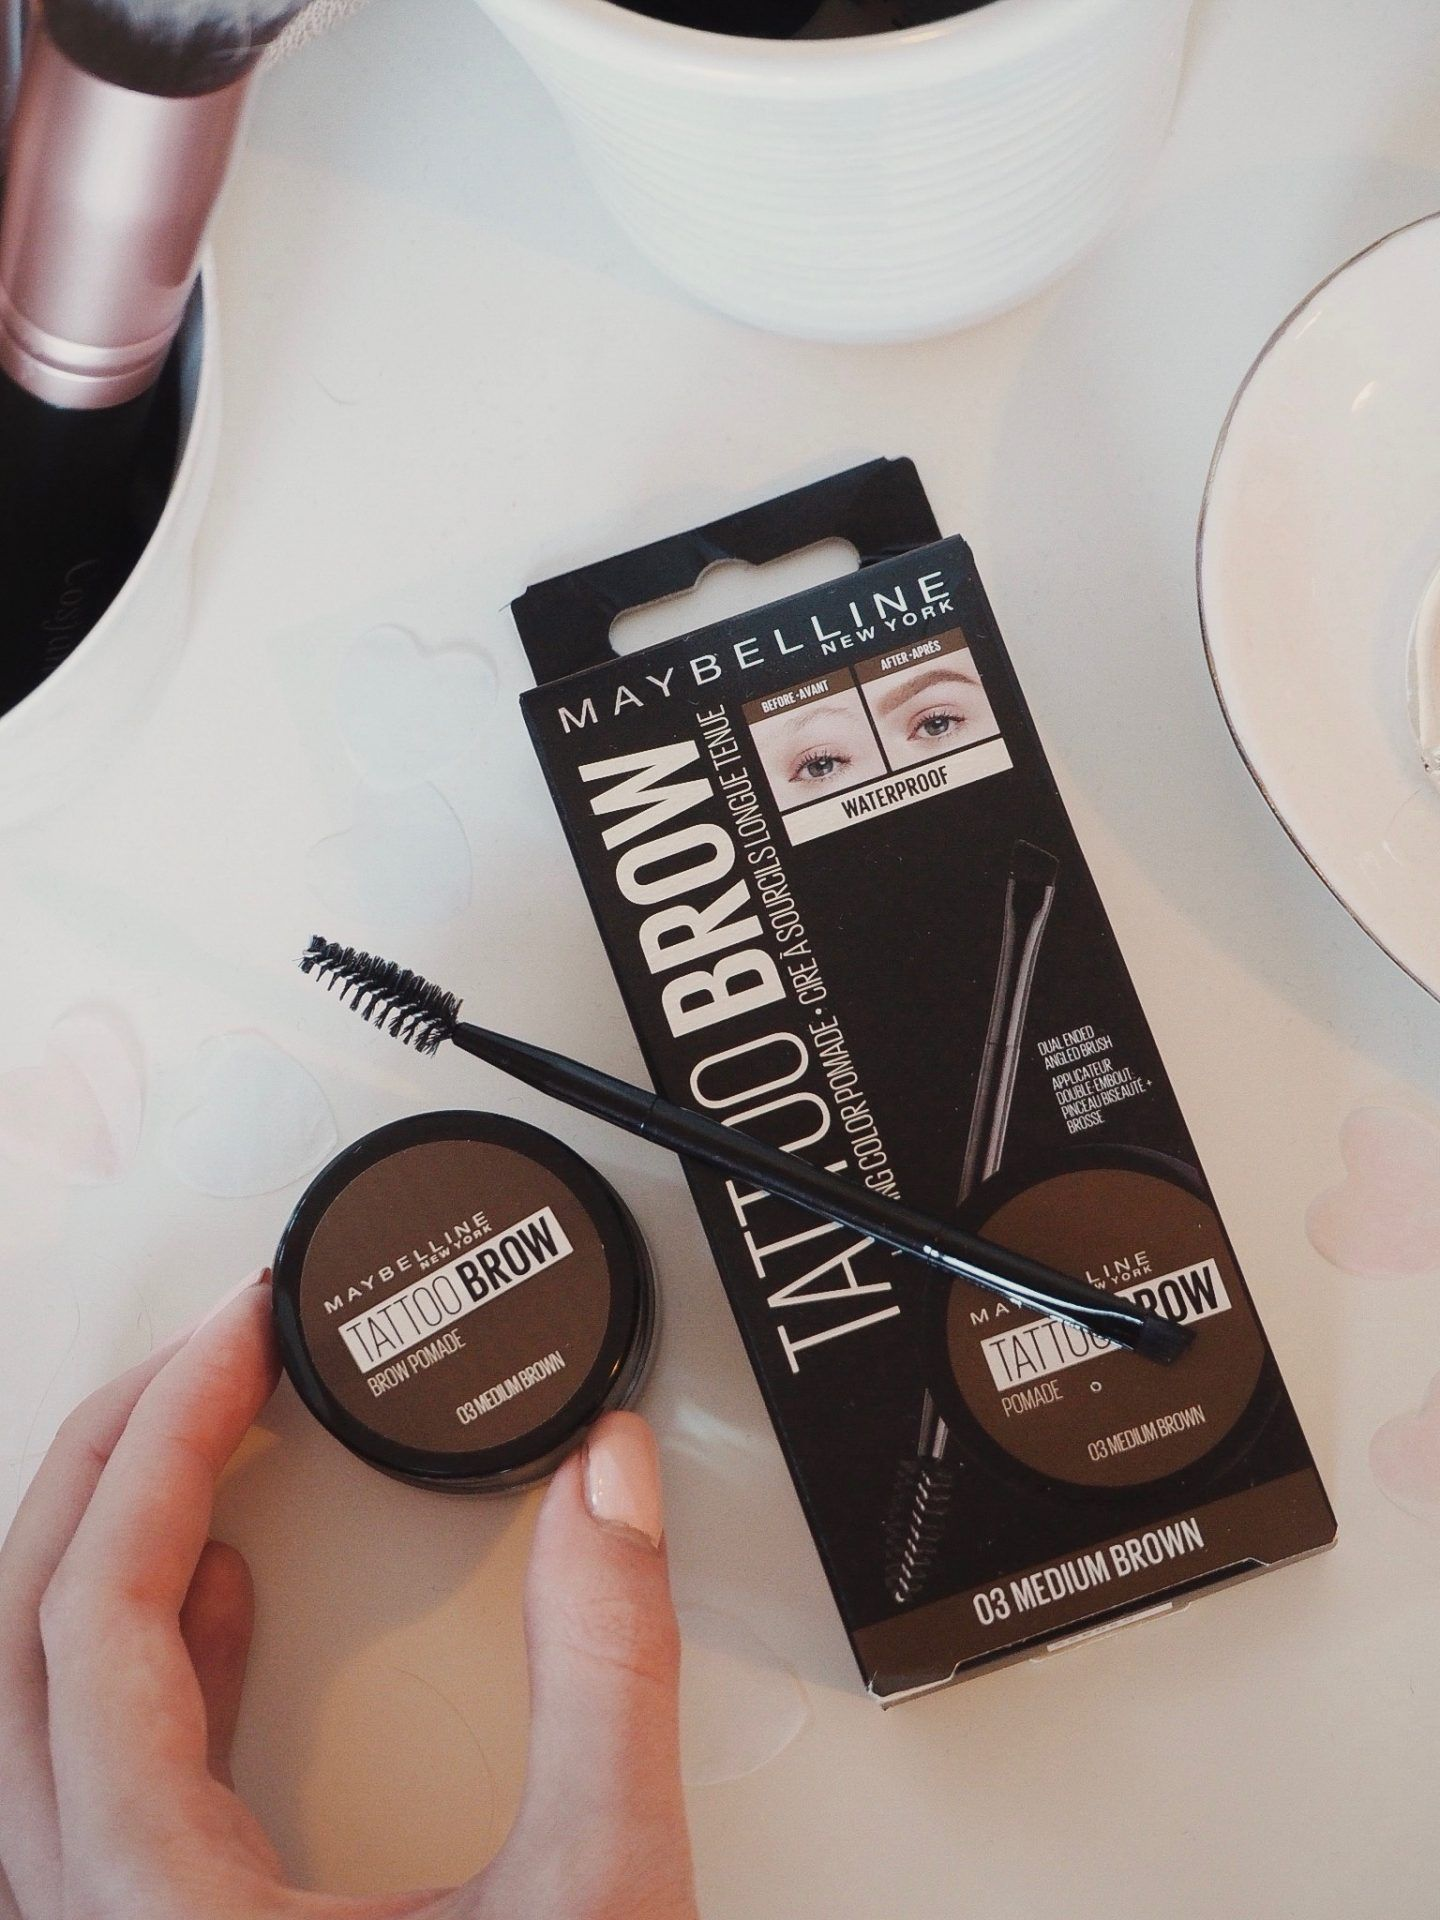 A New Launch From Maybelline Tattoo Brow Pomade Review